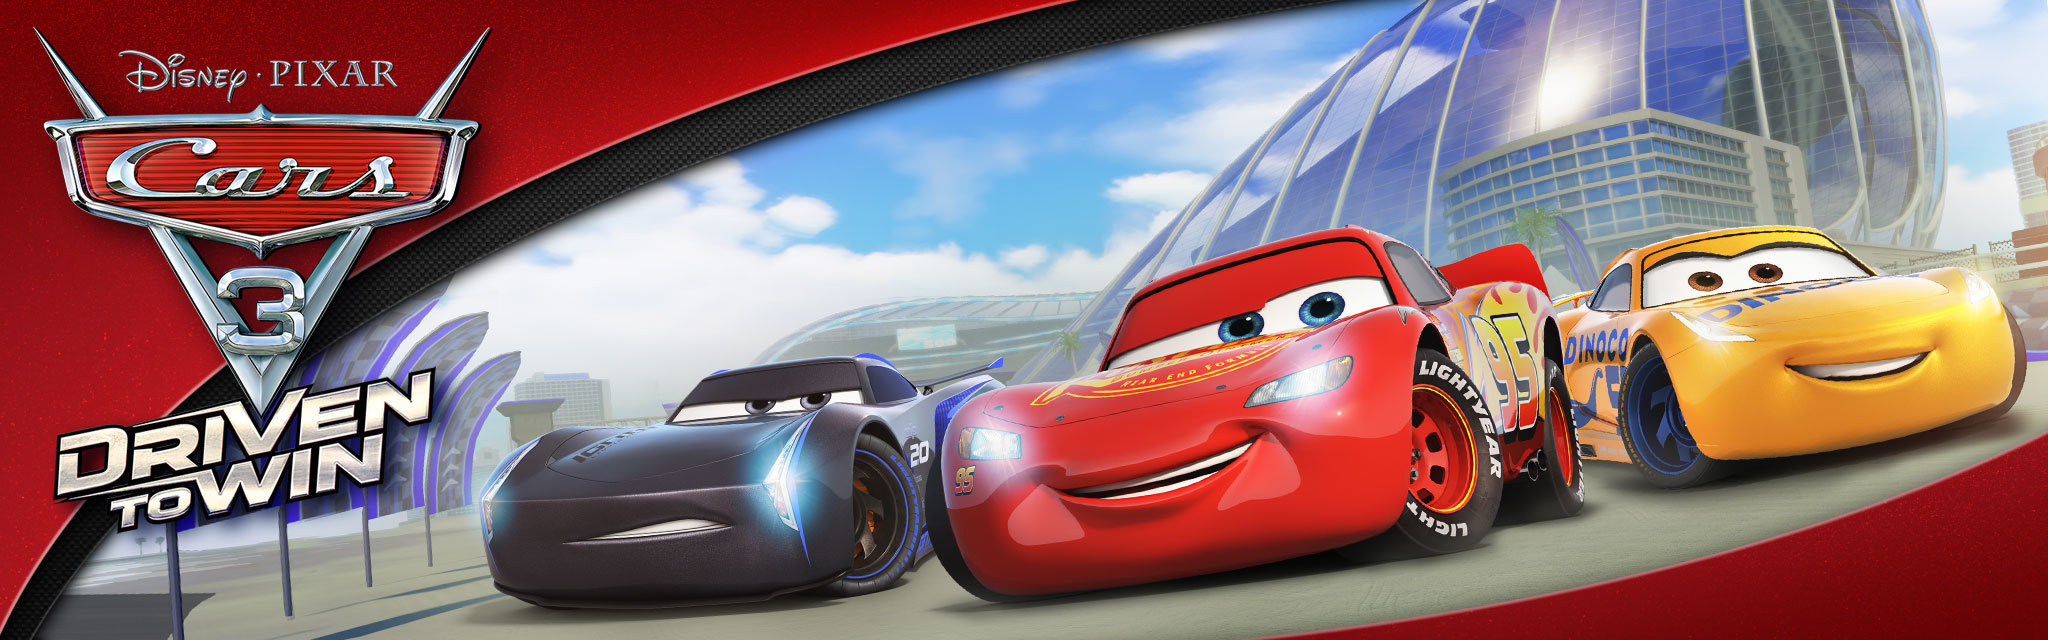 cars full movie free download in hindi